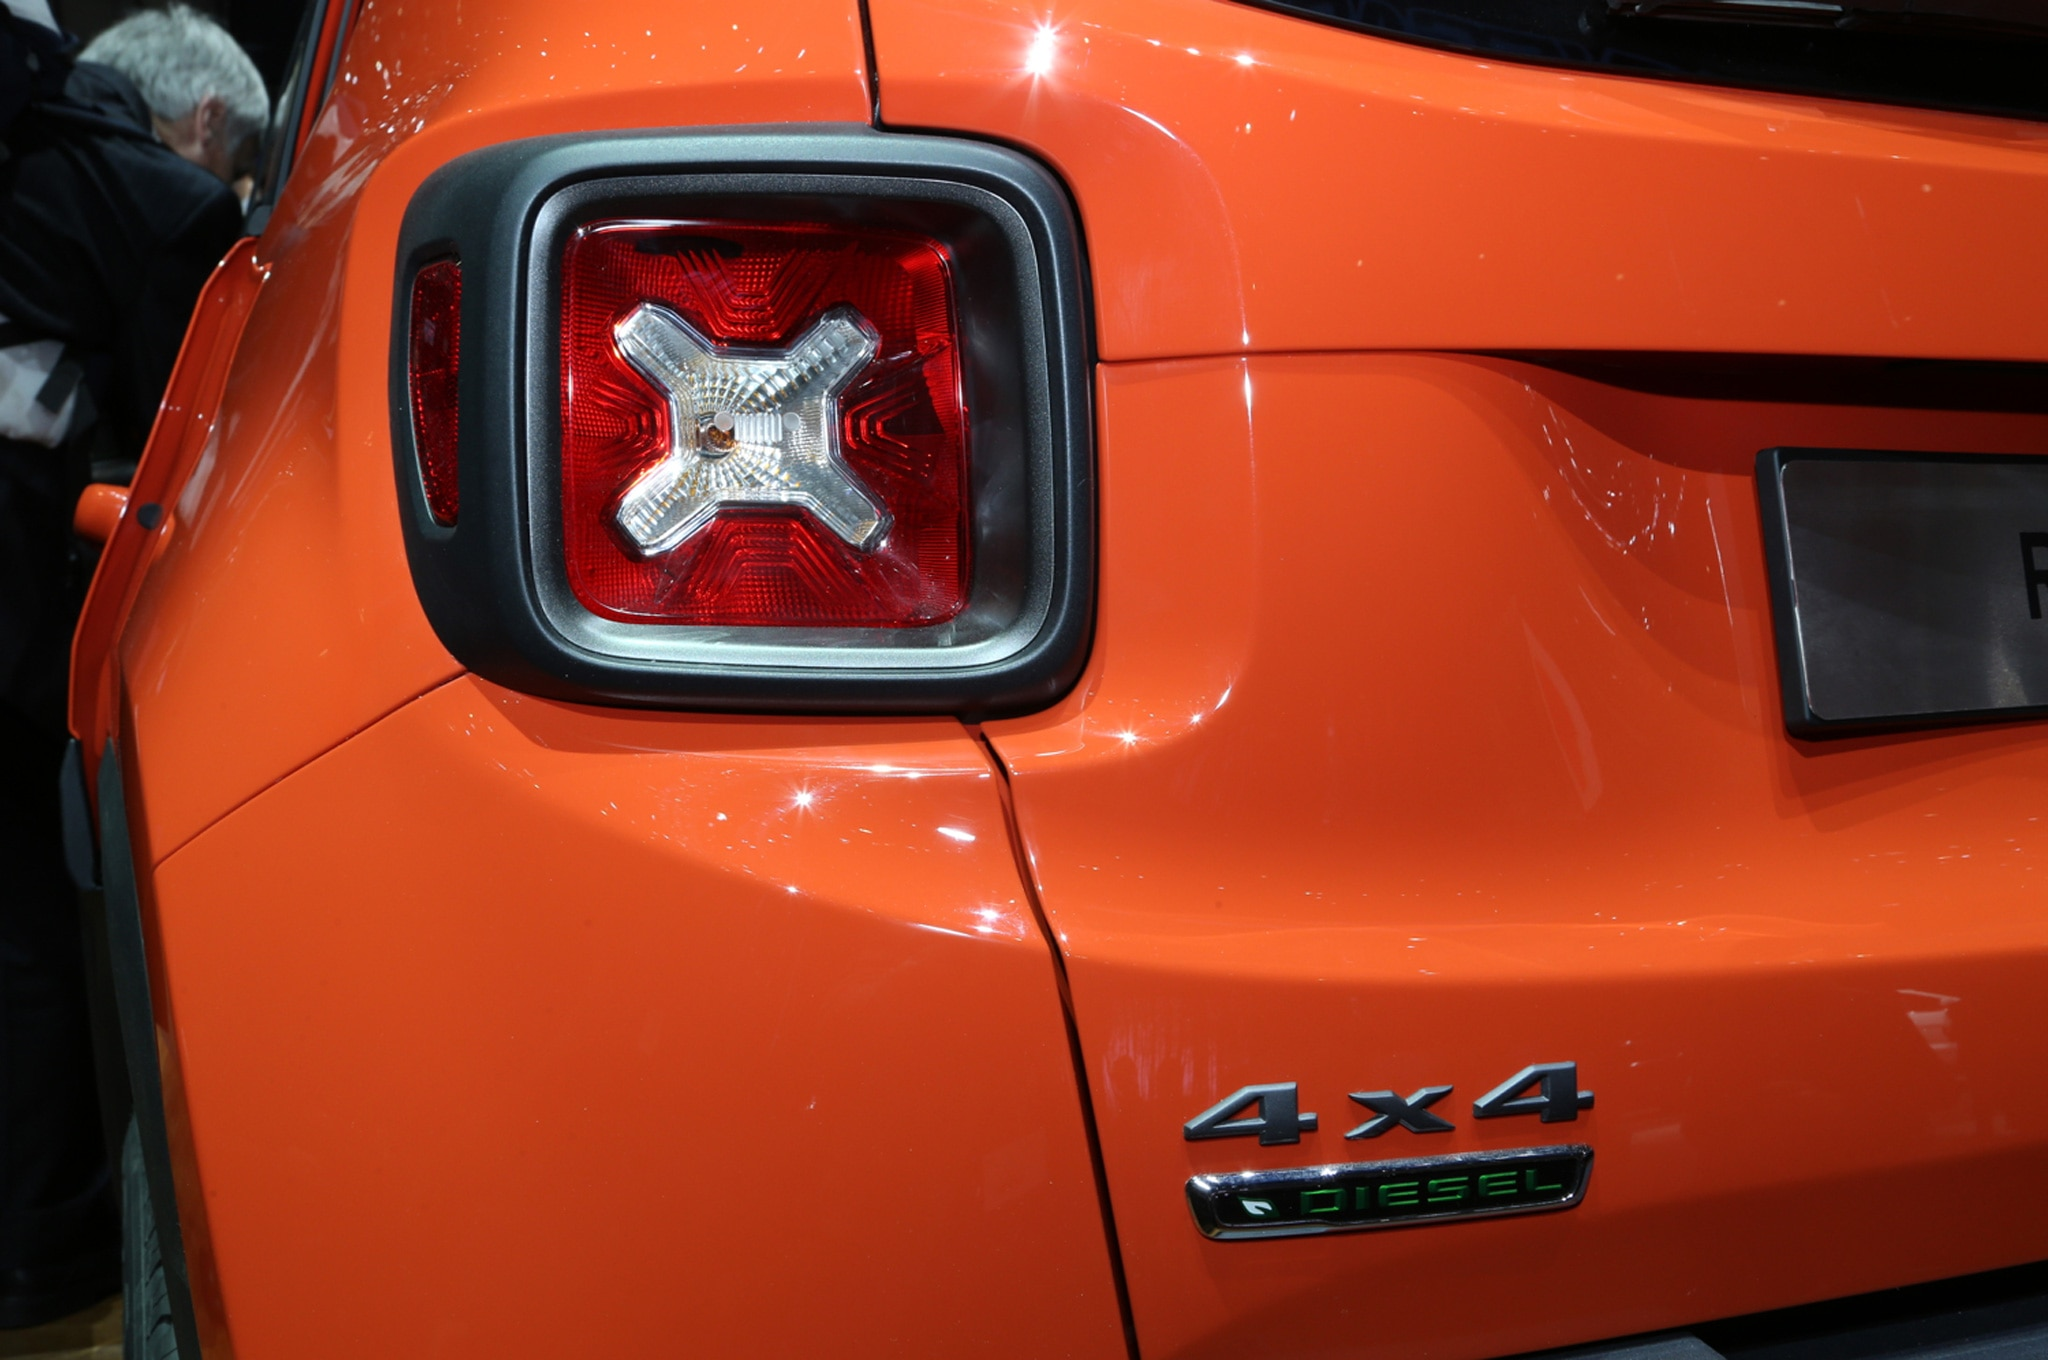 2015 Jeep Renegade Trailhawk show floor taillight and badge